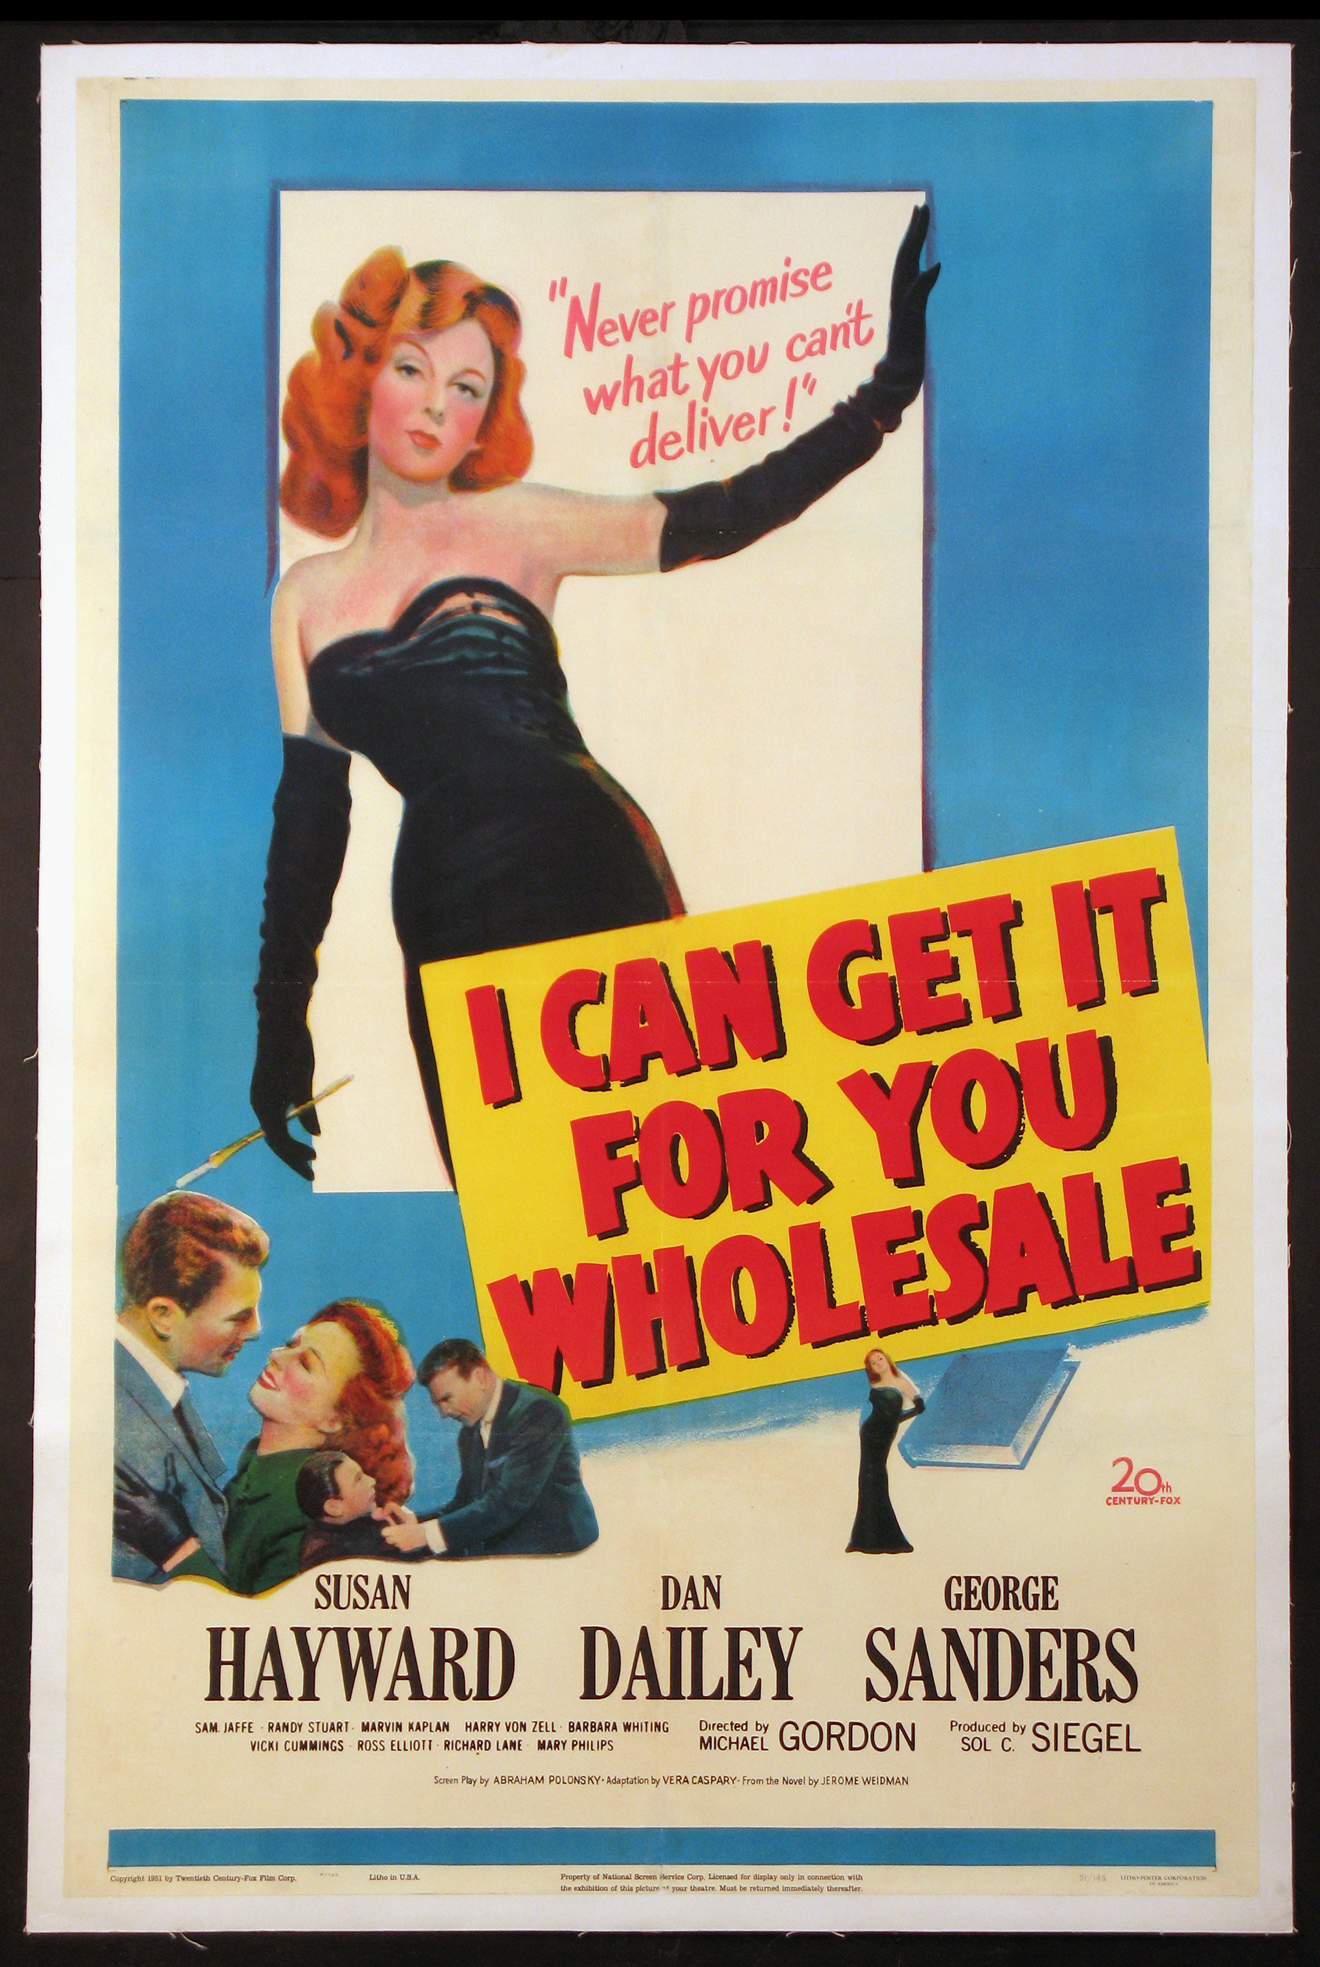 I CAN GET IT FOR YOU WHOLESALE @ FilmPosters.com